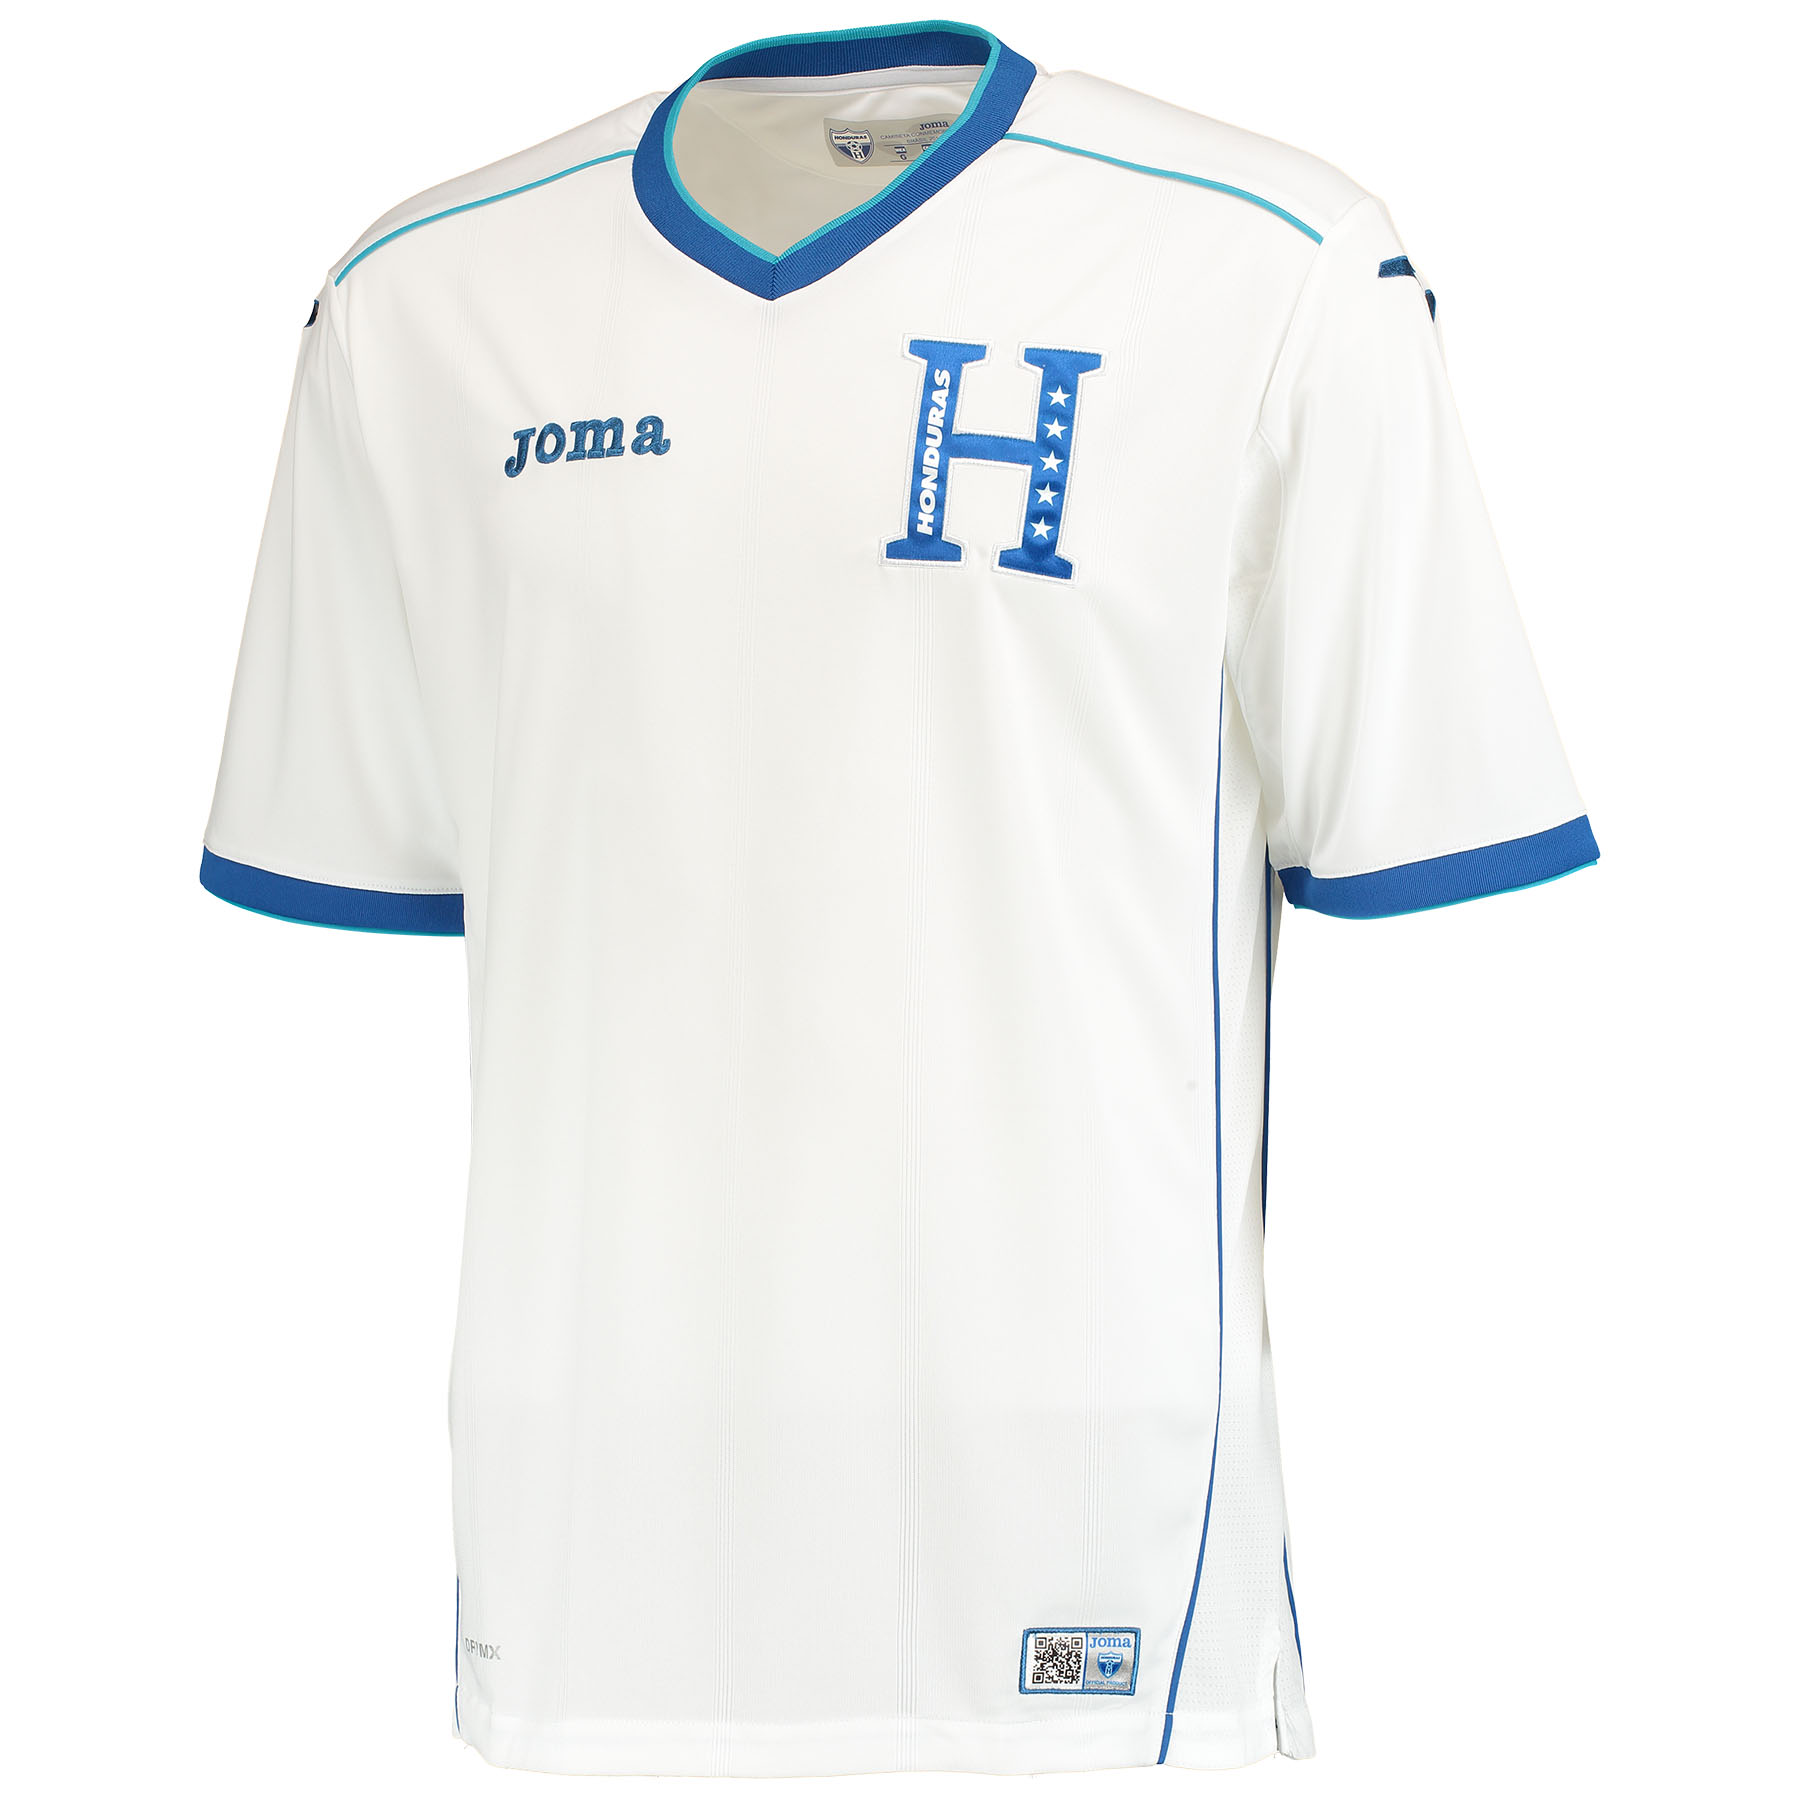 Honduras Home Shirt 2014 White